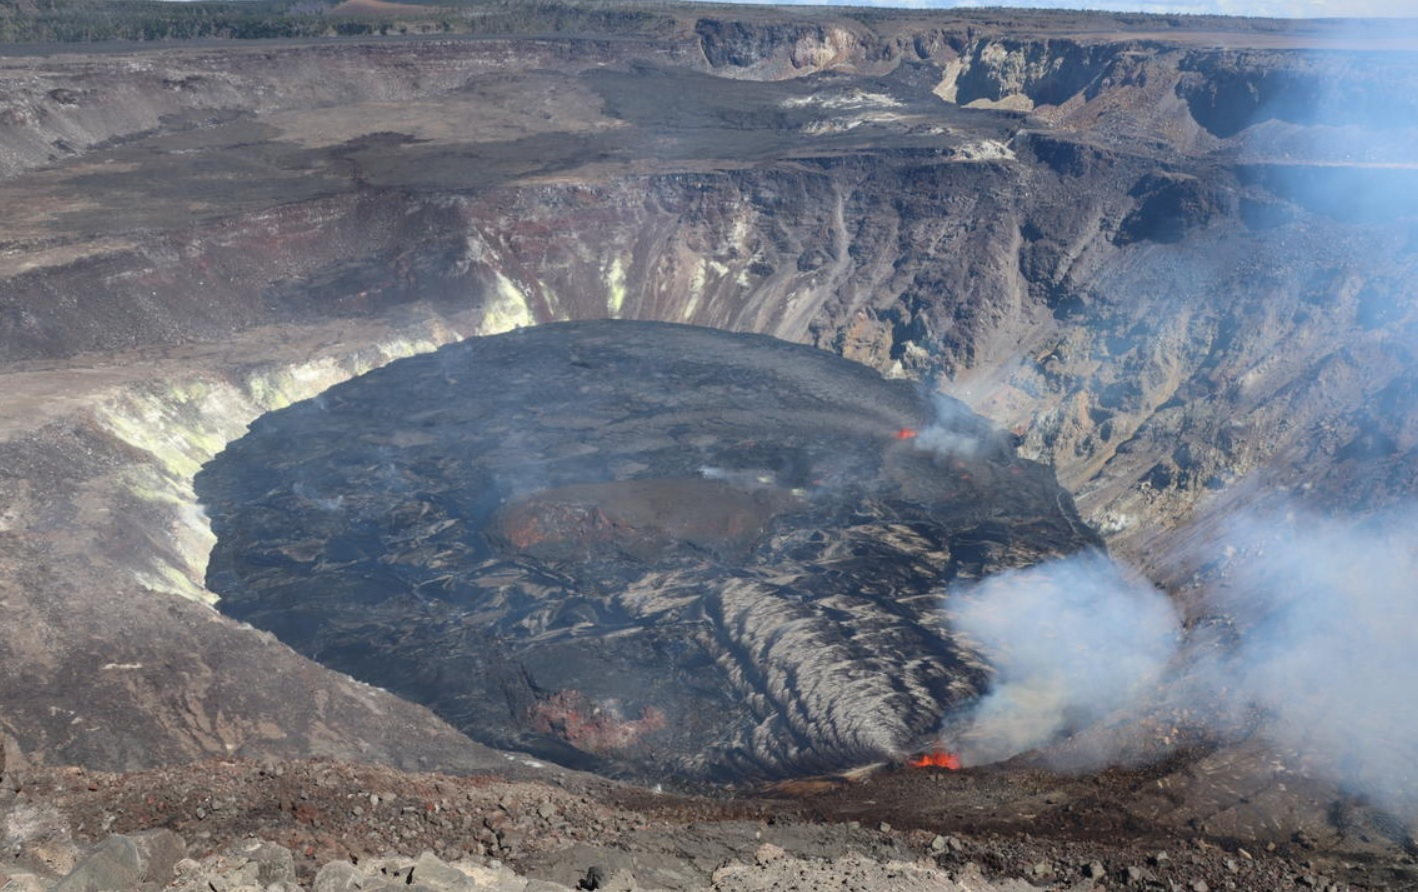 The western vent (lower right) remains the dominant source of fountaining, while low lava fountains are still emerging through the southern portion of the lava lake (center right) (image: HVO)